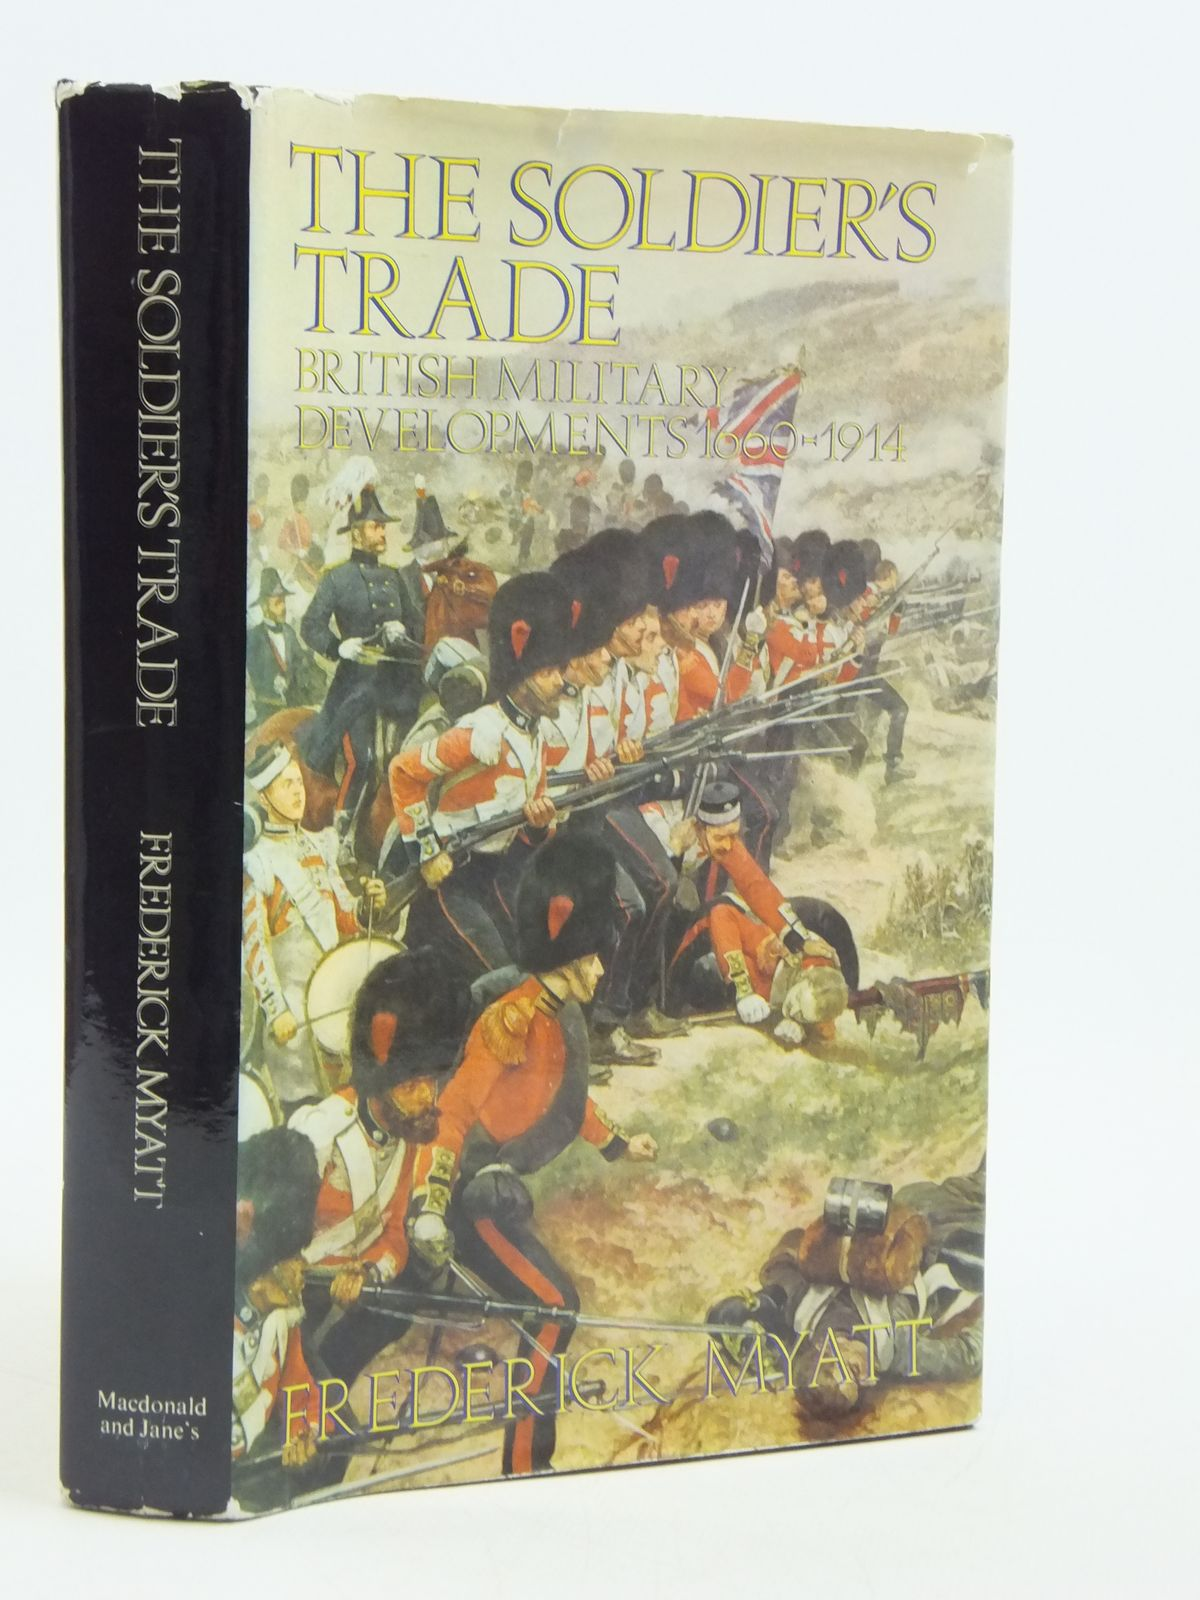 Photo of THE SOLDIER'S TRADE BRITISH MILITARY DEVELOPMENTS 1660-1914 written by Myatt, Frederick published by Macdonald and Jane's (STOCK CODE: 2110718)  for sale by Stella & Rose's Books